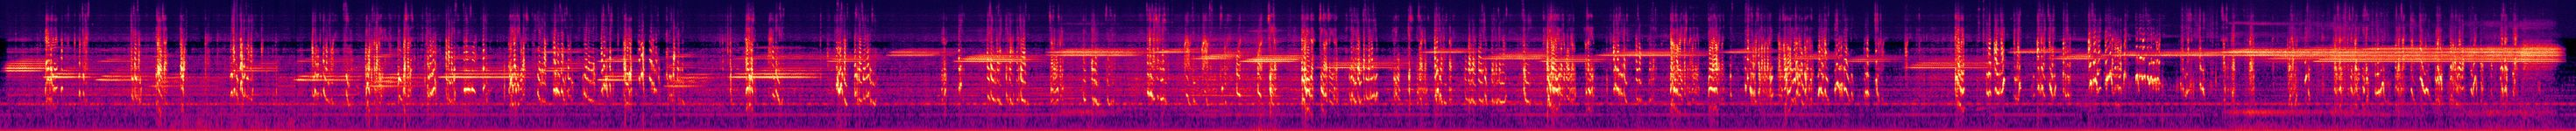 The Naked Sun - 10. Landscape, peaceful and serene - Spectrogram.jpg